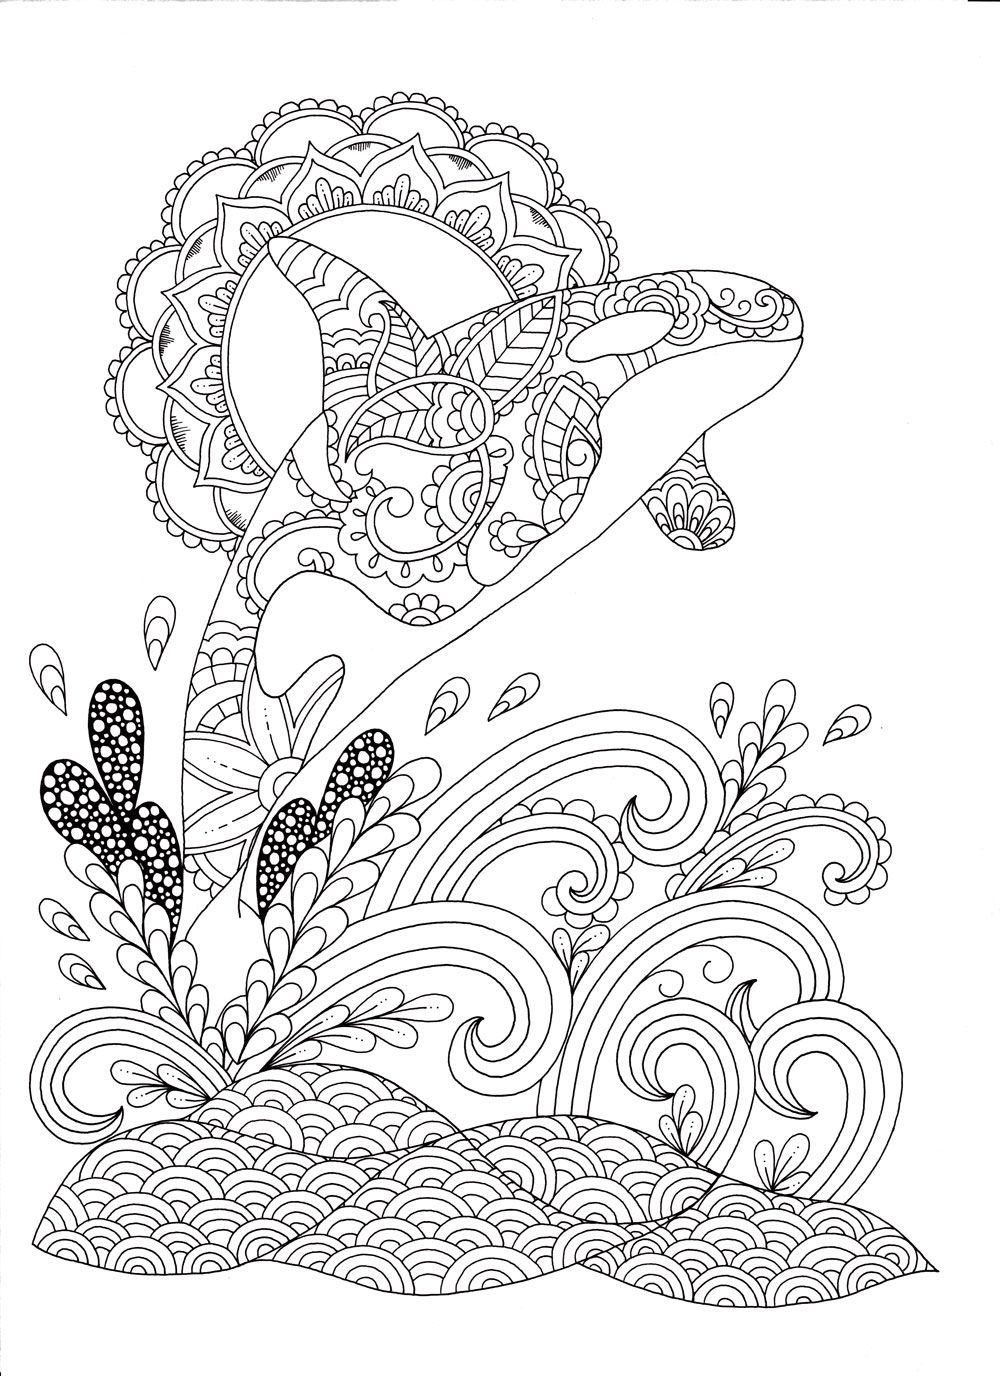 Benefits Of Stress Relieving Adult Coloring Books